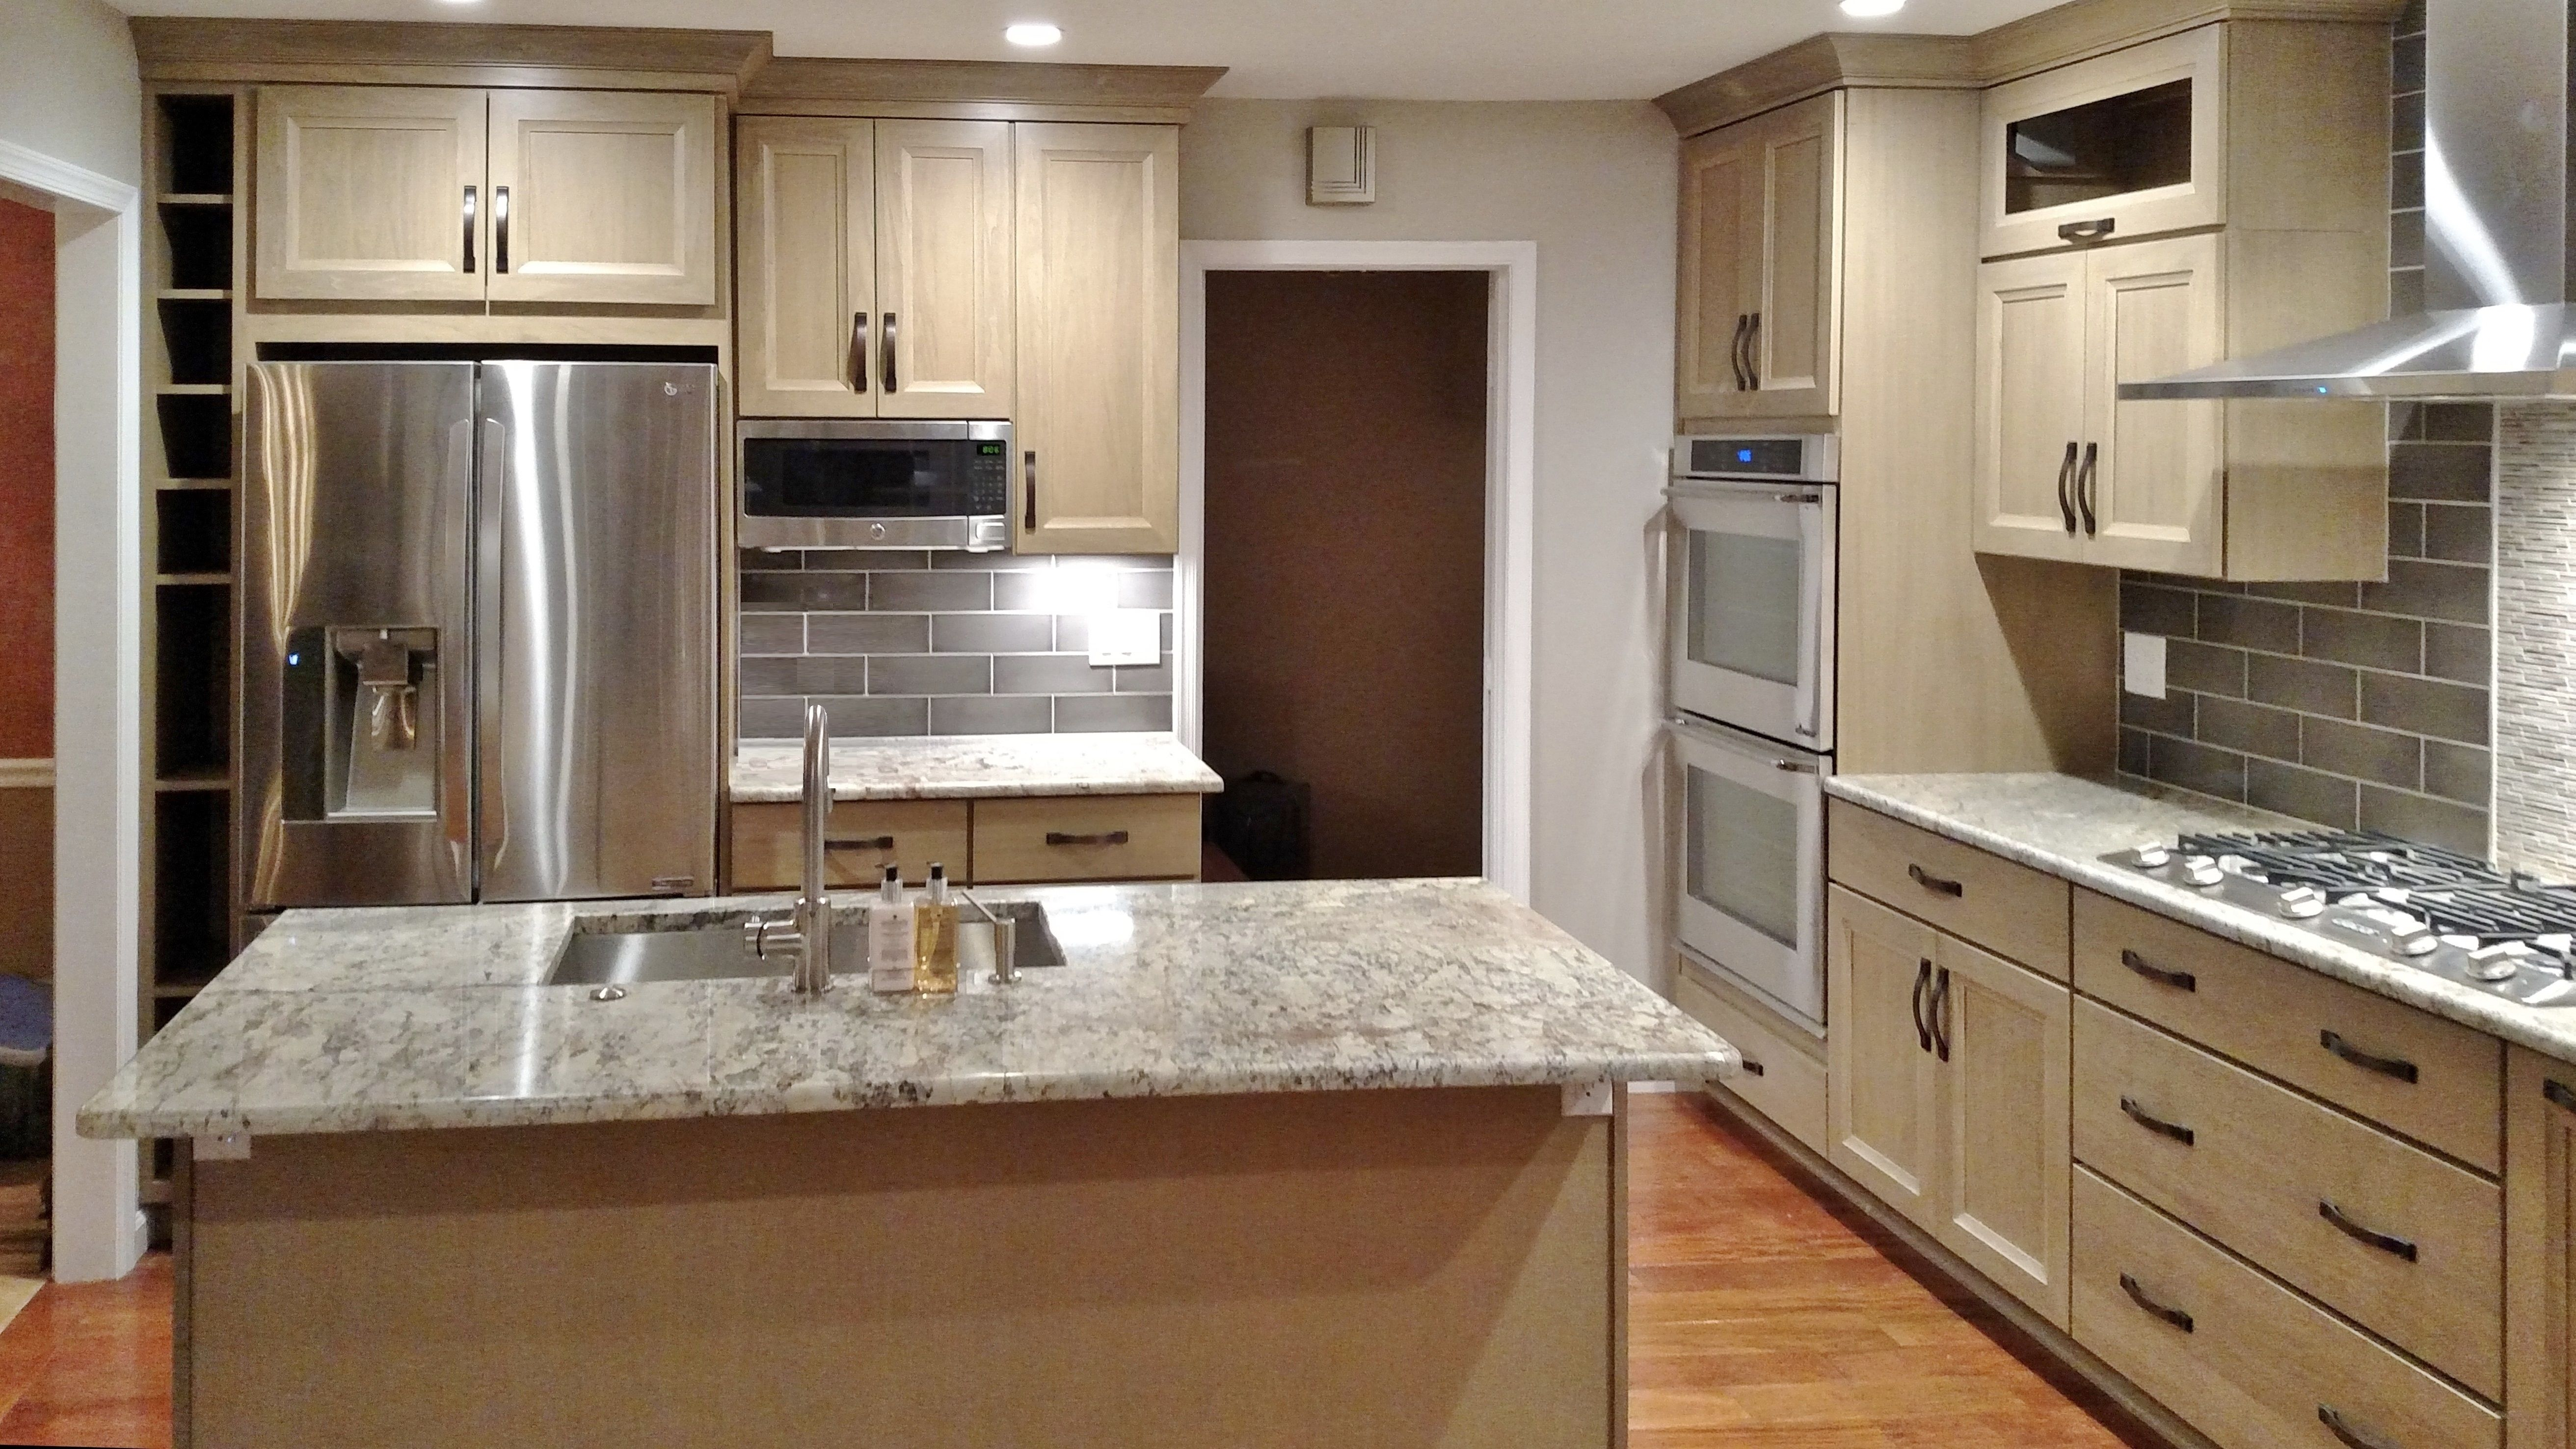 Poplar Cabinets With Seagull Stain Granite Countertops See Our Rockville Showroom Sunday Kitchen Ba Kitchen Cabinet Design Kitchen Design Kitchen Cabinets